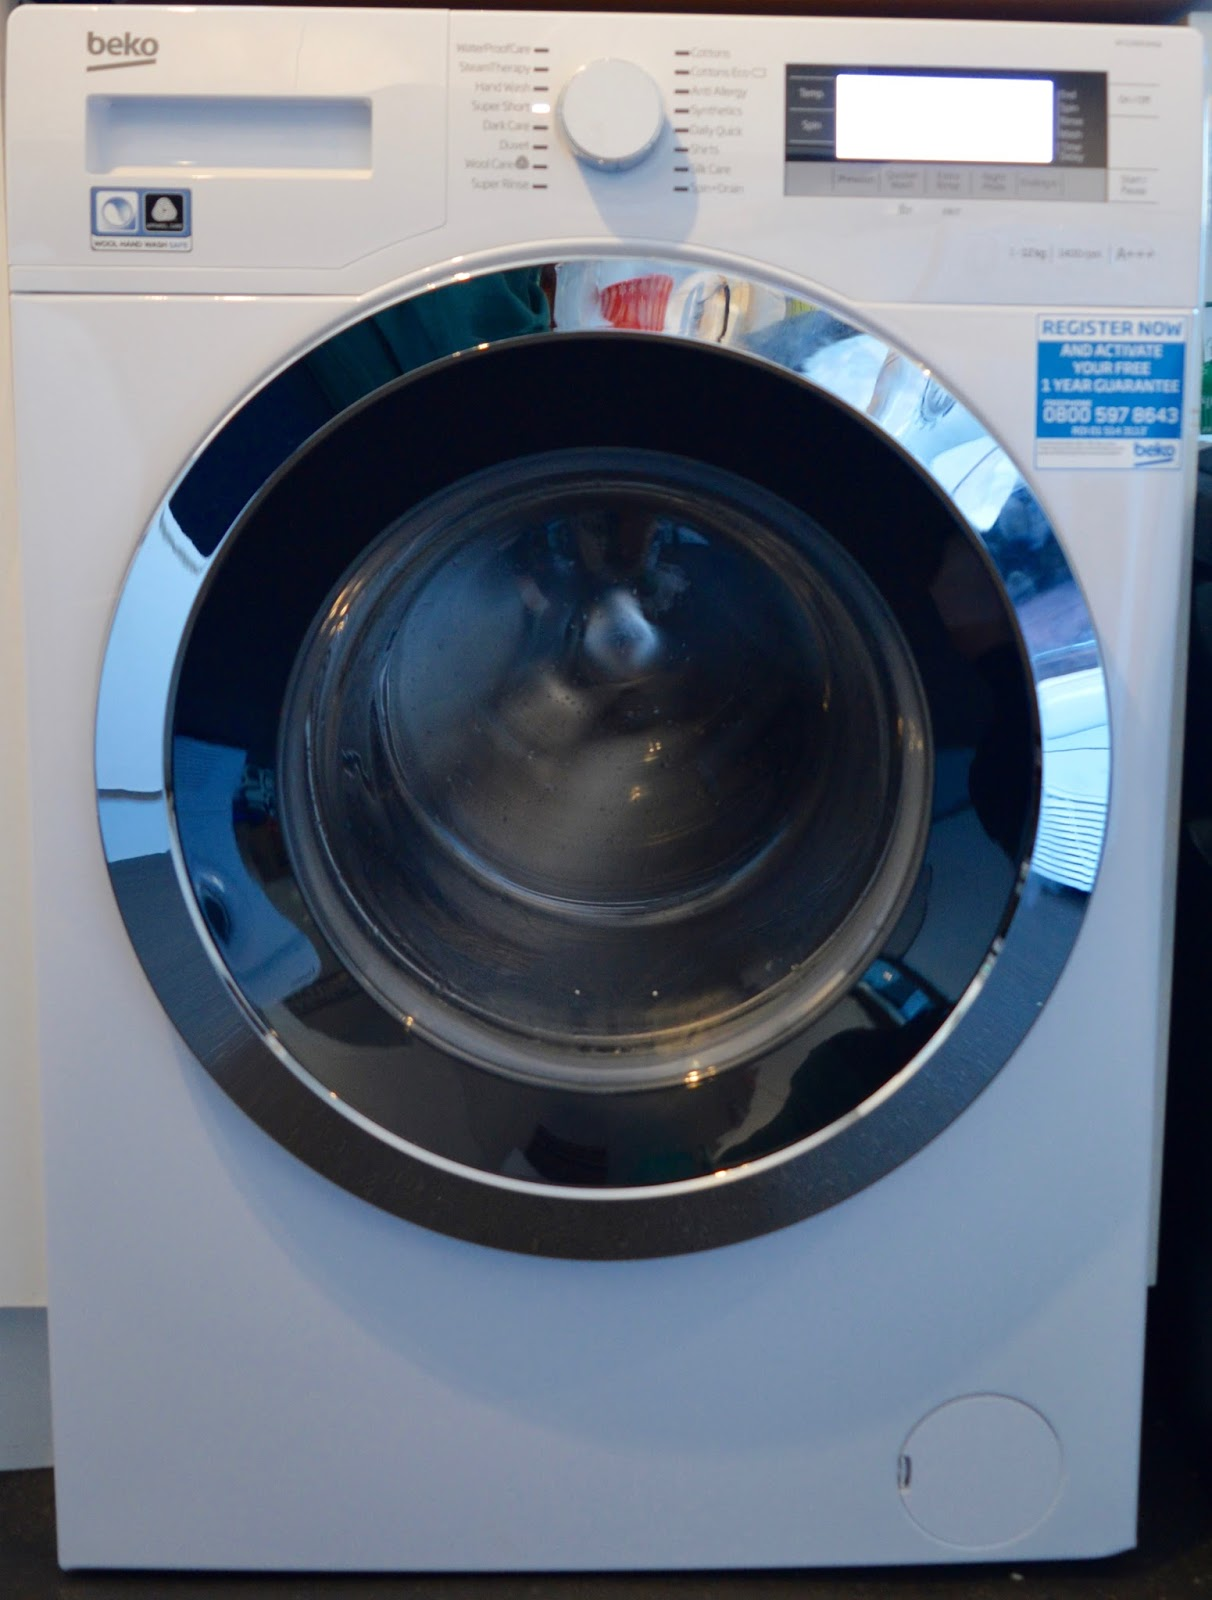 Testing The 28 Minute Cycle Function On A New Beko Washing